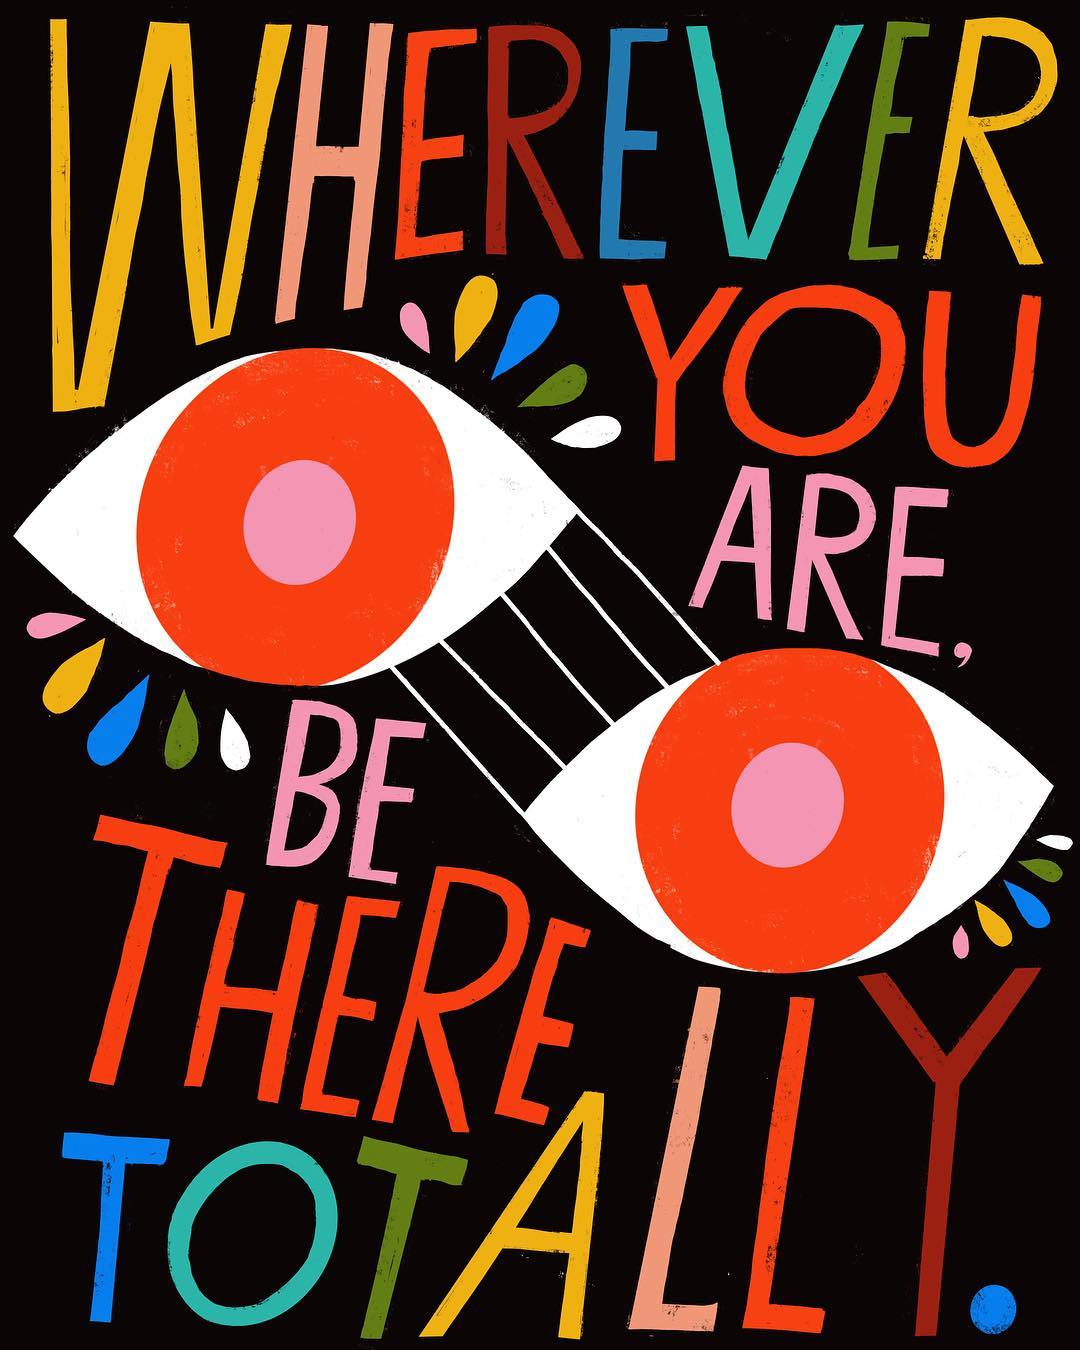 Hand lettering illustration by Lisa Congdon